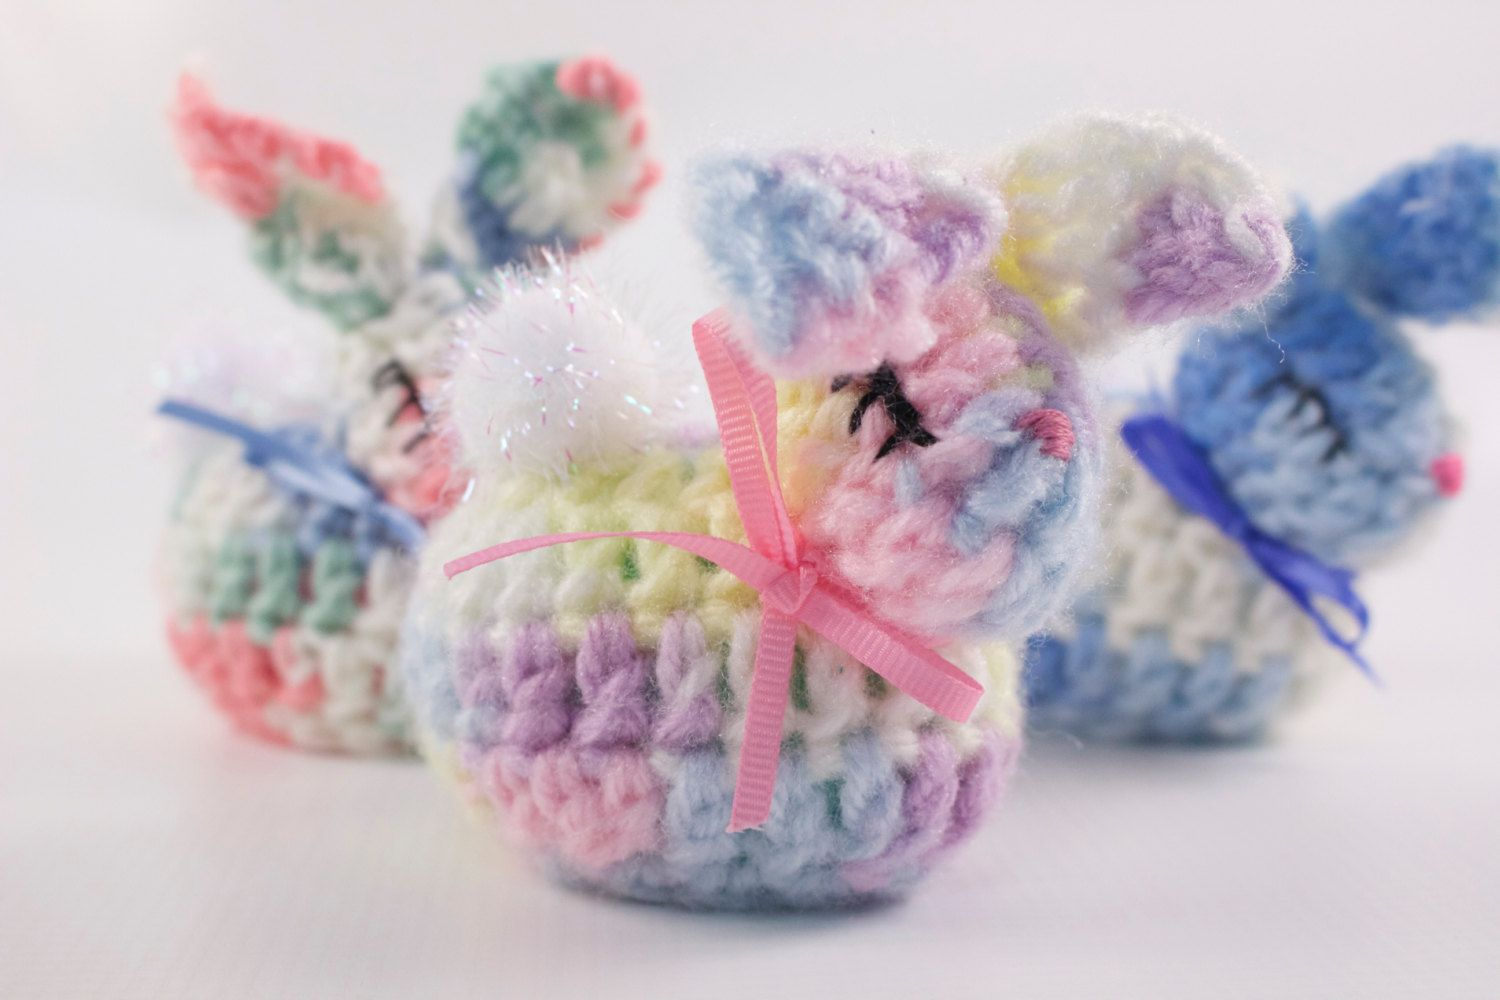 Crocheted Bunny Easter Egg set of 3 by sissyandbubba on Etsy https://www.etsy.com/listing/224688717/crocheted-bunny-easter-egg-set-of-3